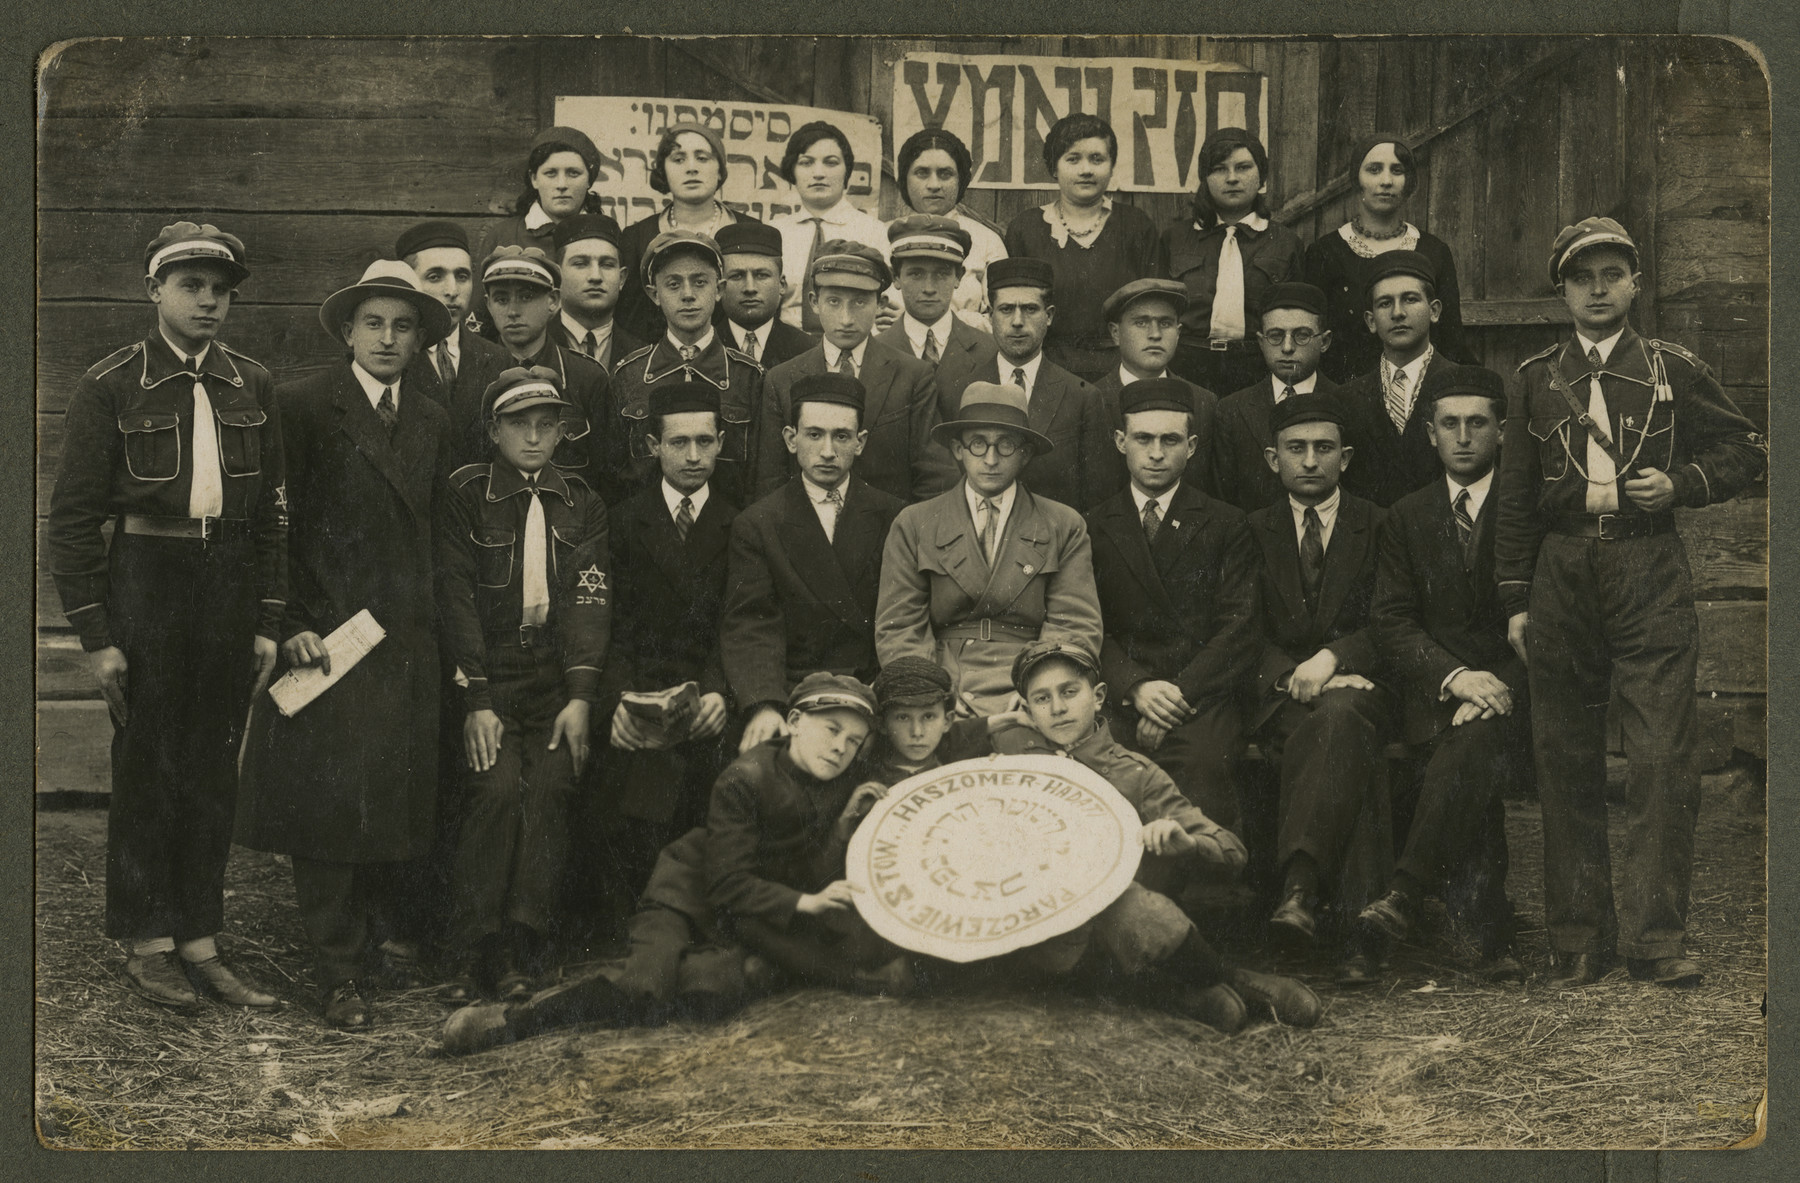 Asher Fetherhar (later Zidon) poses with members of the Hechalutz Mizrachi hachshara in Parczew.